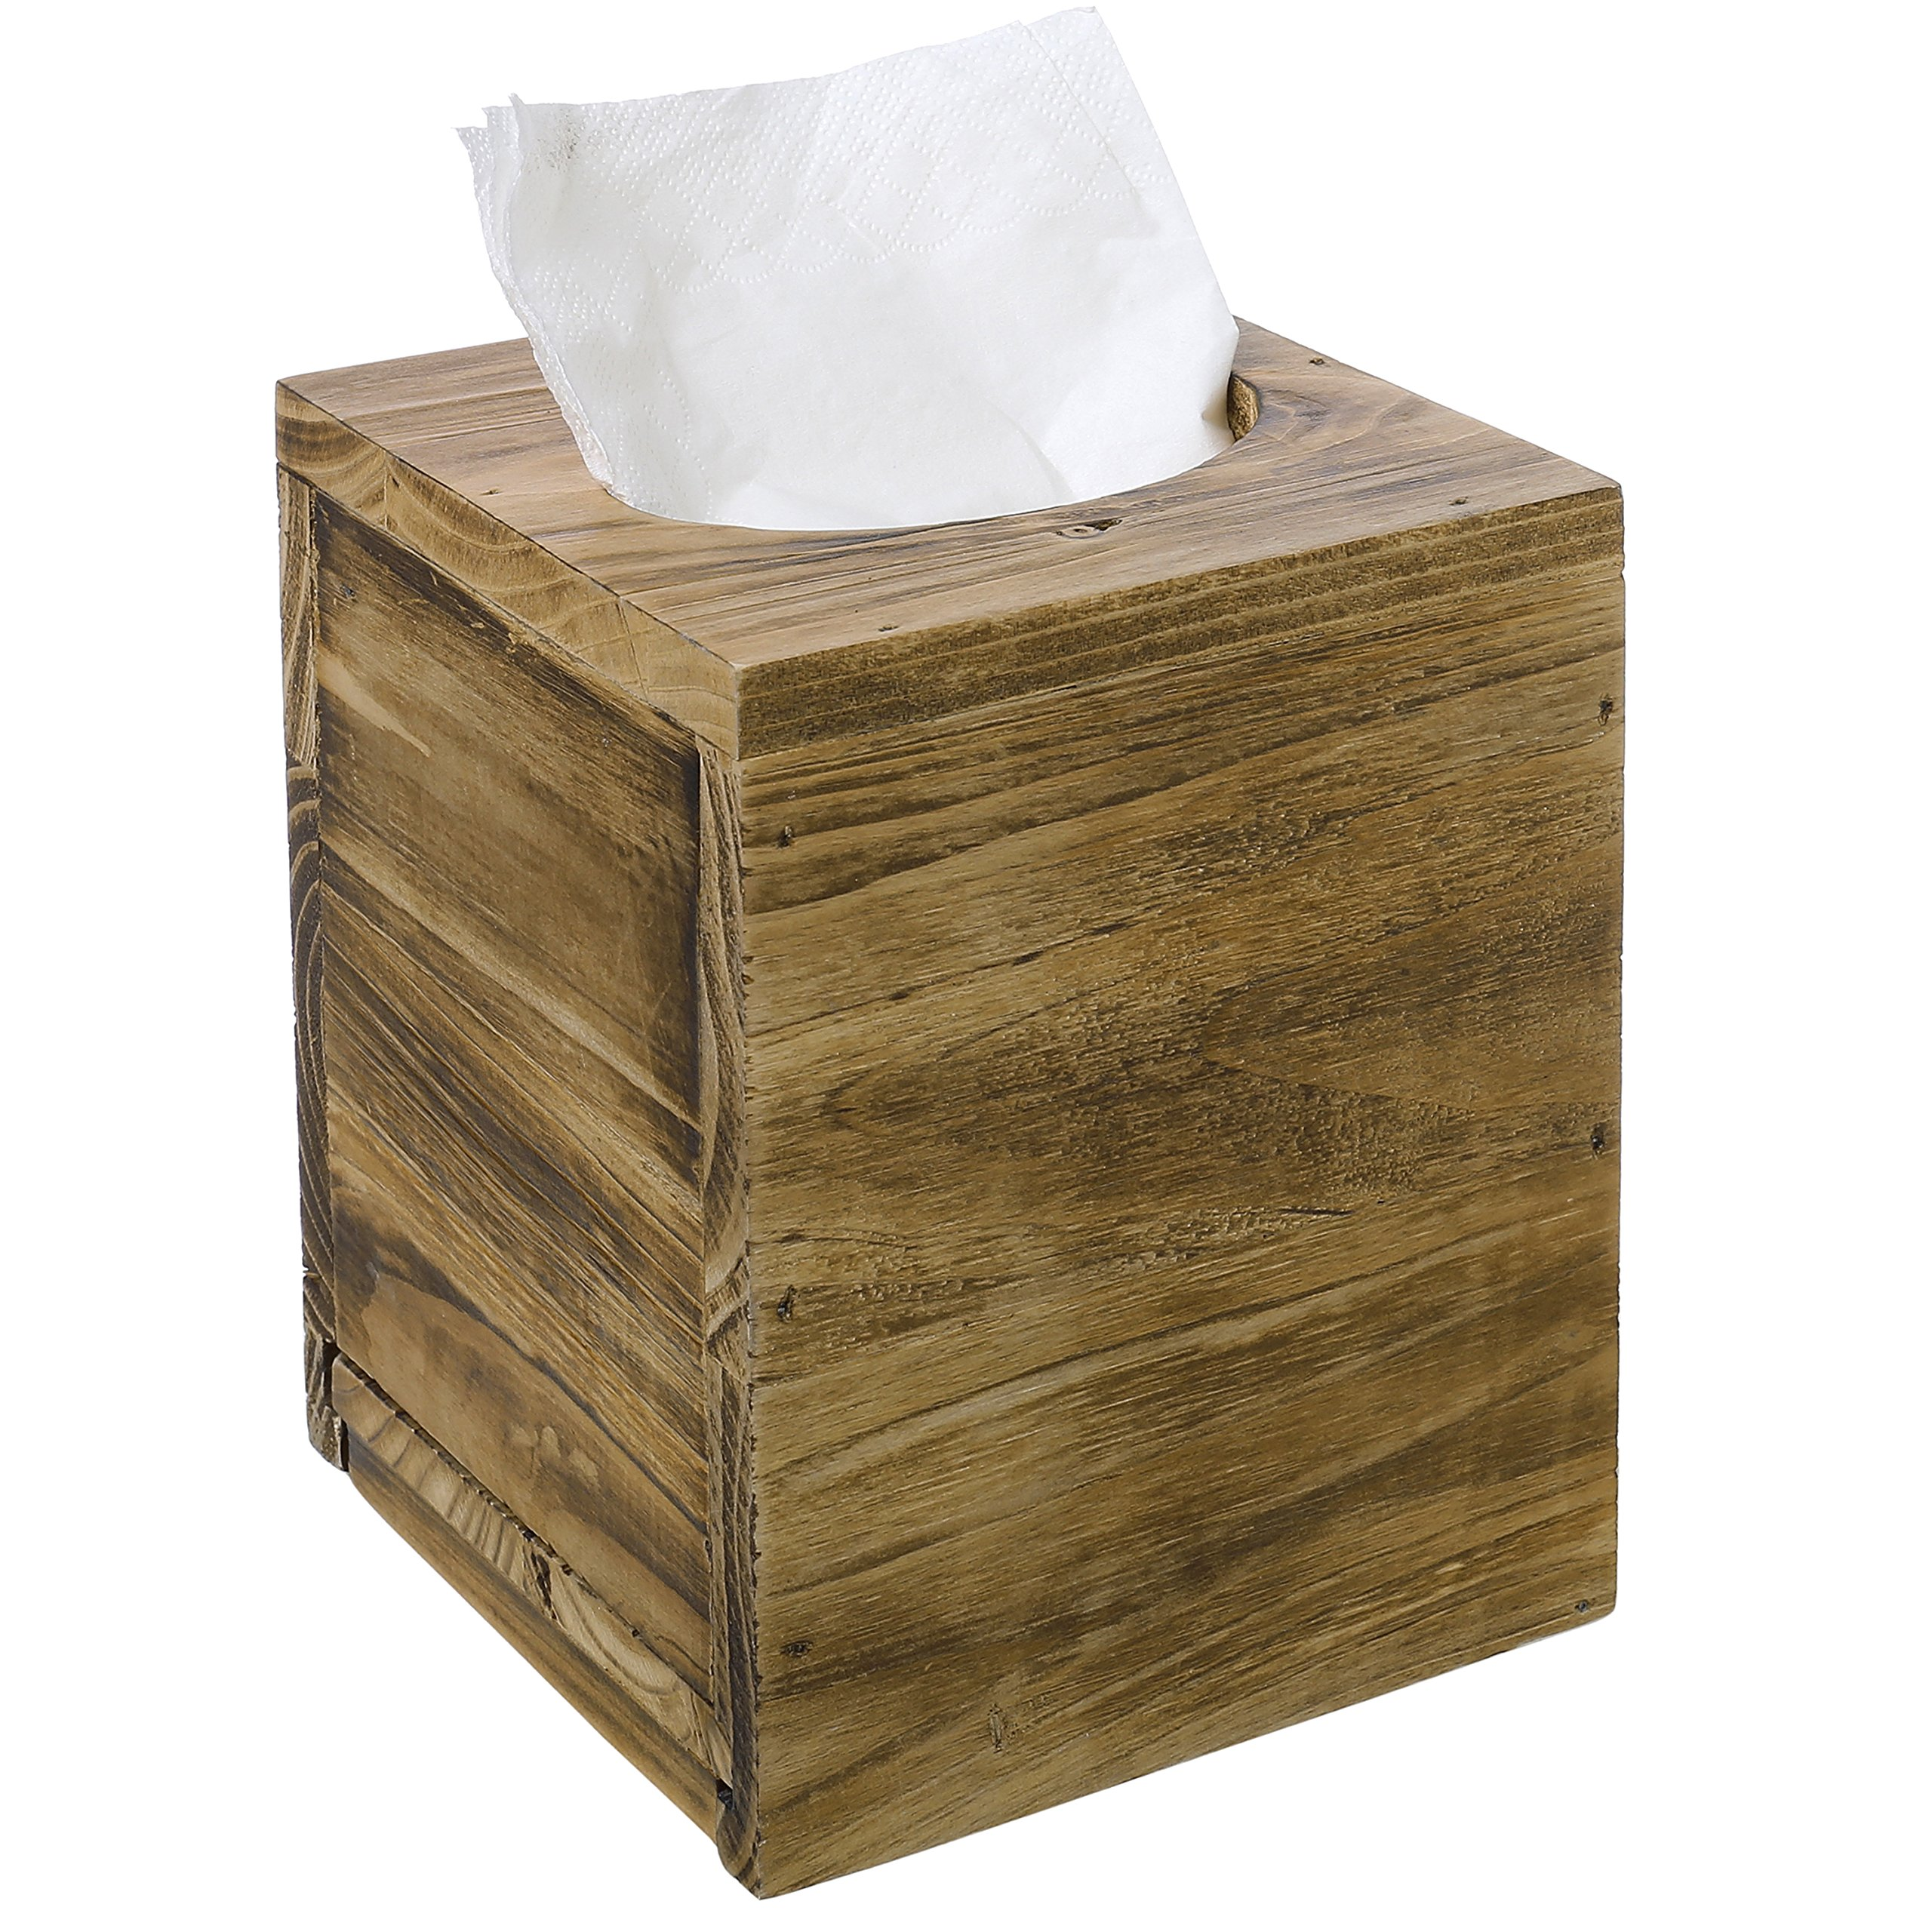 Distressed Honey Brown Square Tissue Box Cover with Slide-Out Bottom Panel